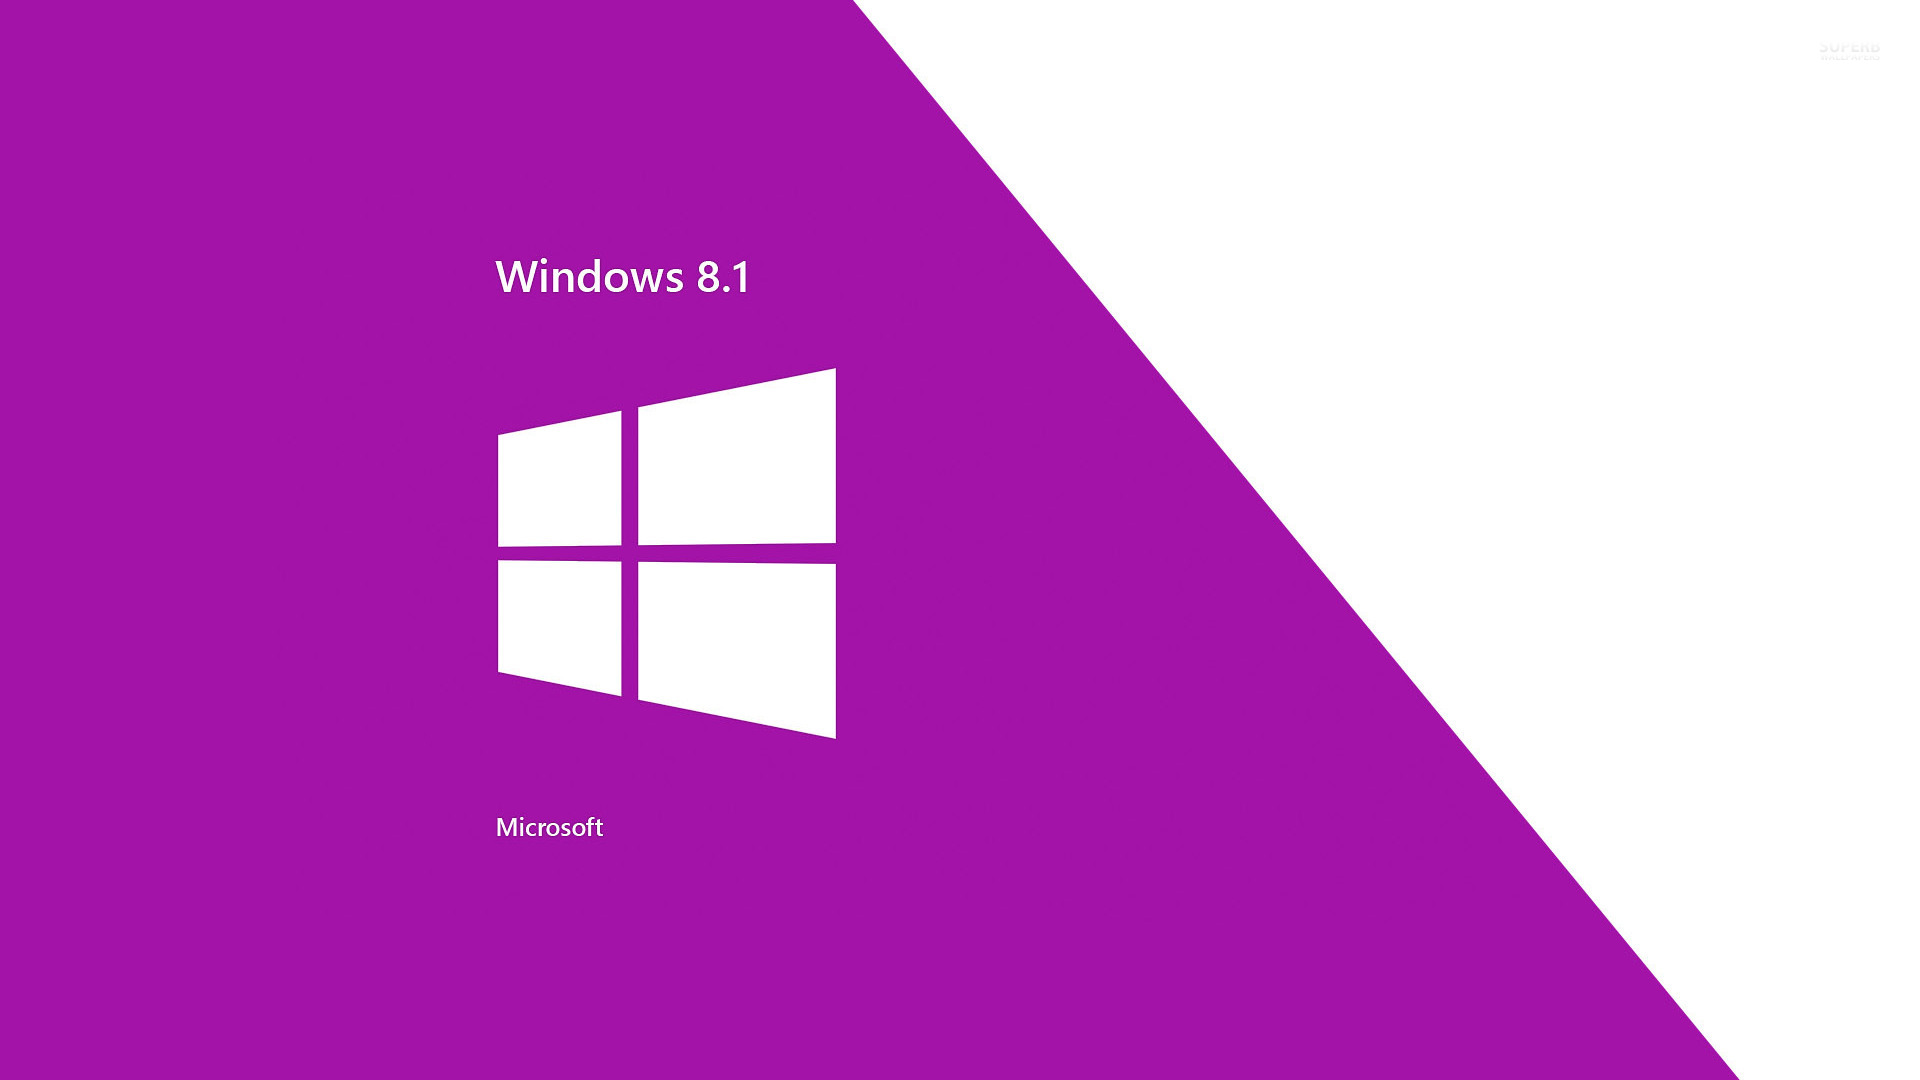 windows 8.1 hd wallpaper 1920x1080 - wallpapersafari